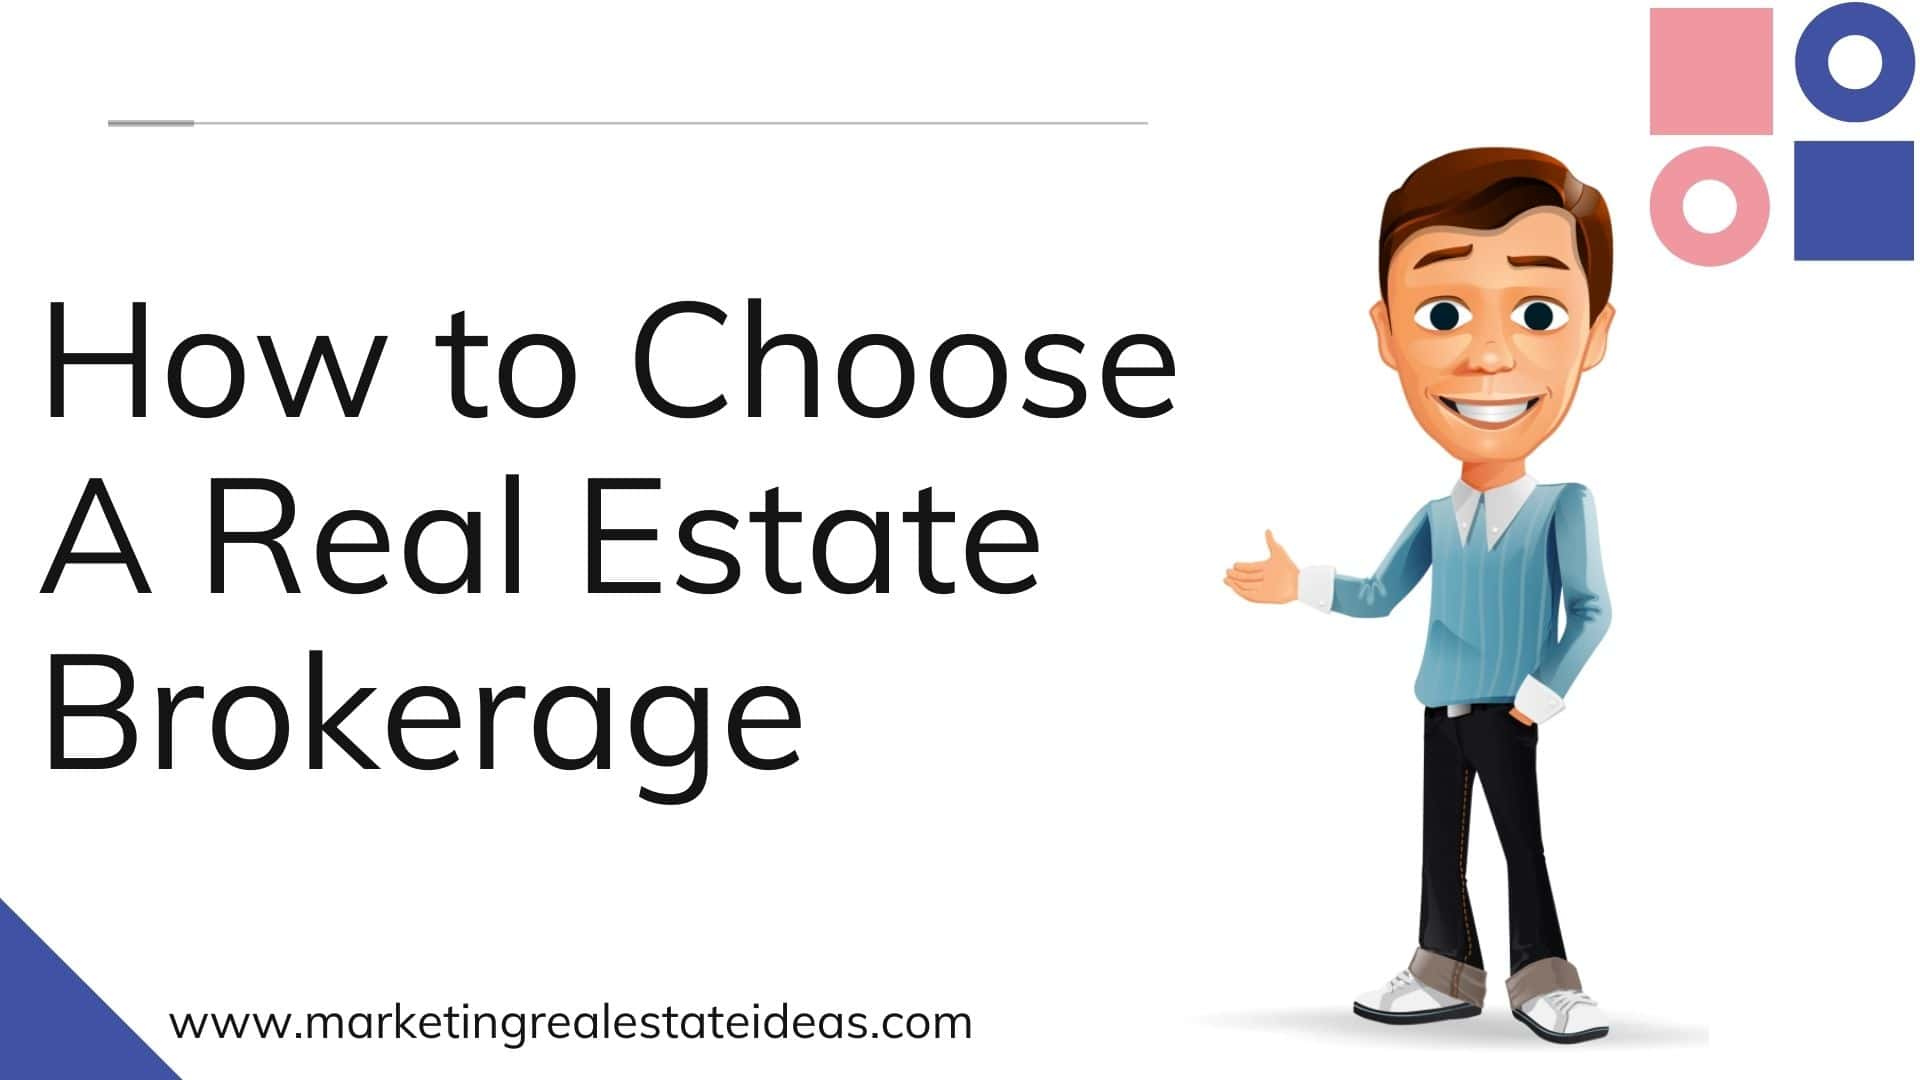 How to Choose A Real Estate Brokerage